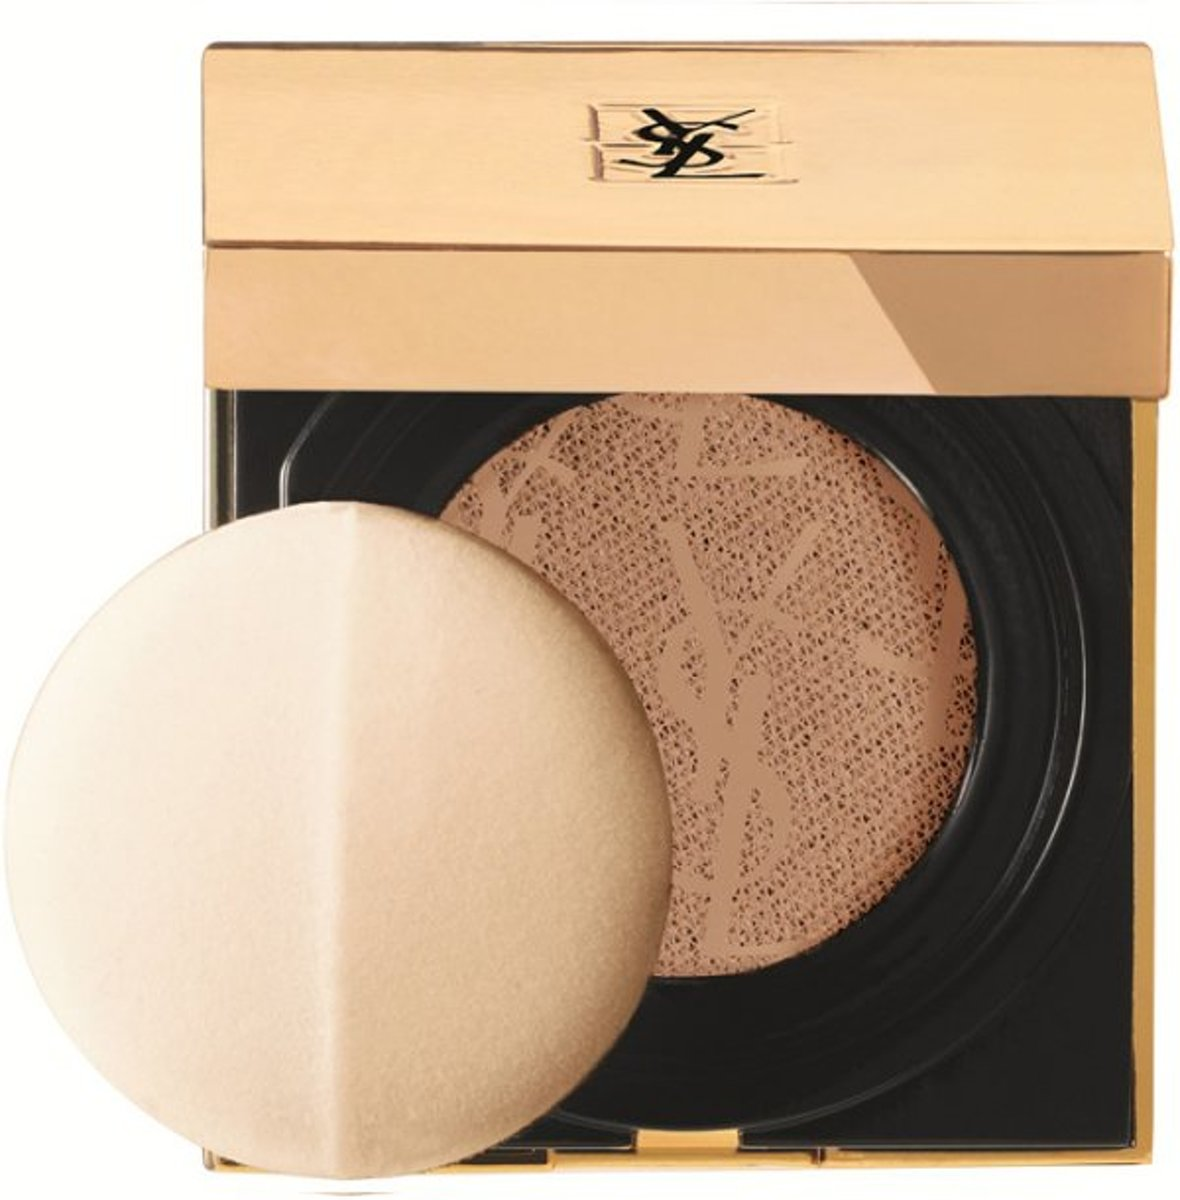 Yves Saint Laurent Touche Eclat Le Cushion Foundation  Foundation 15 gr - B60